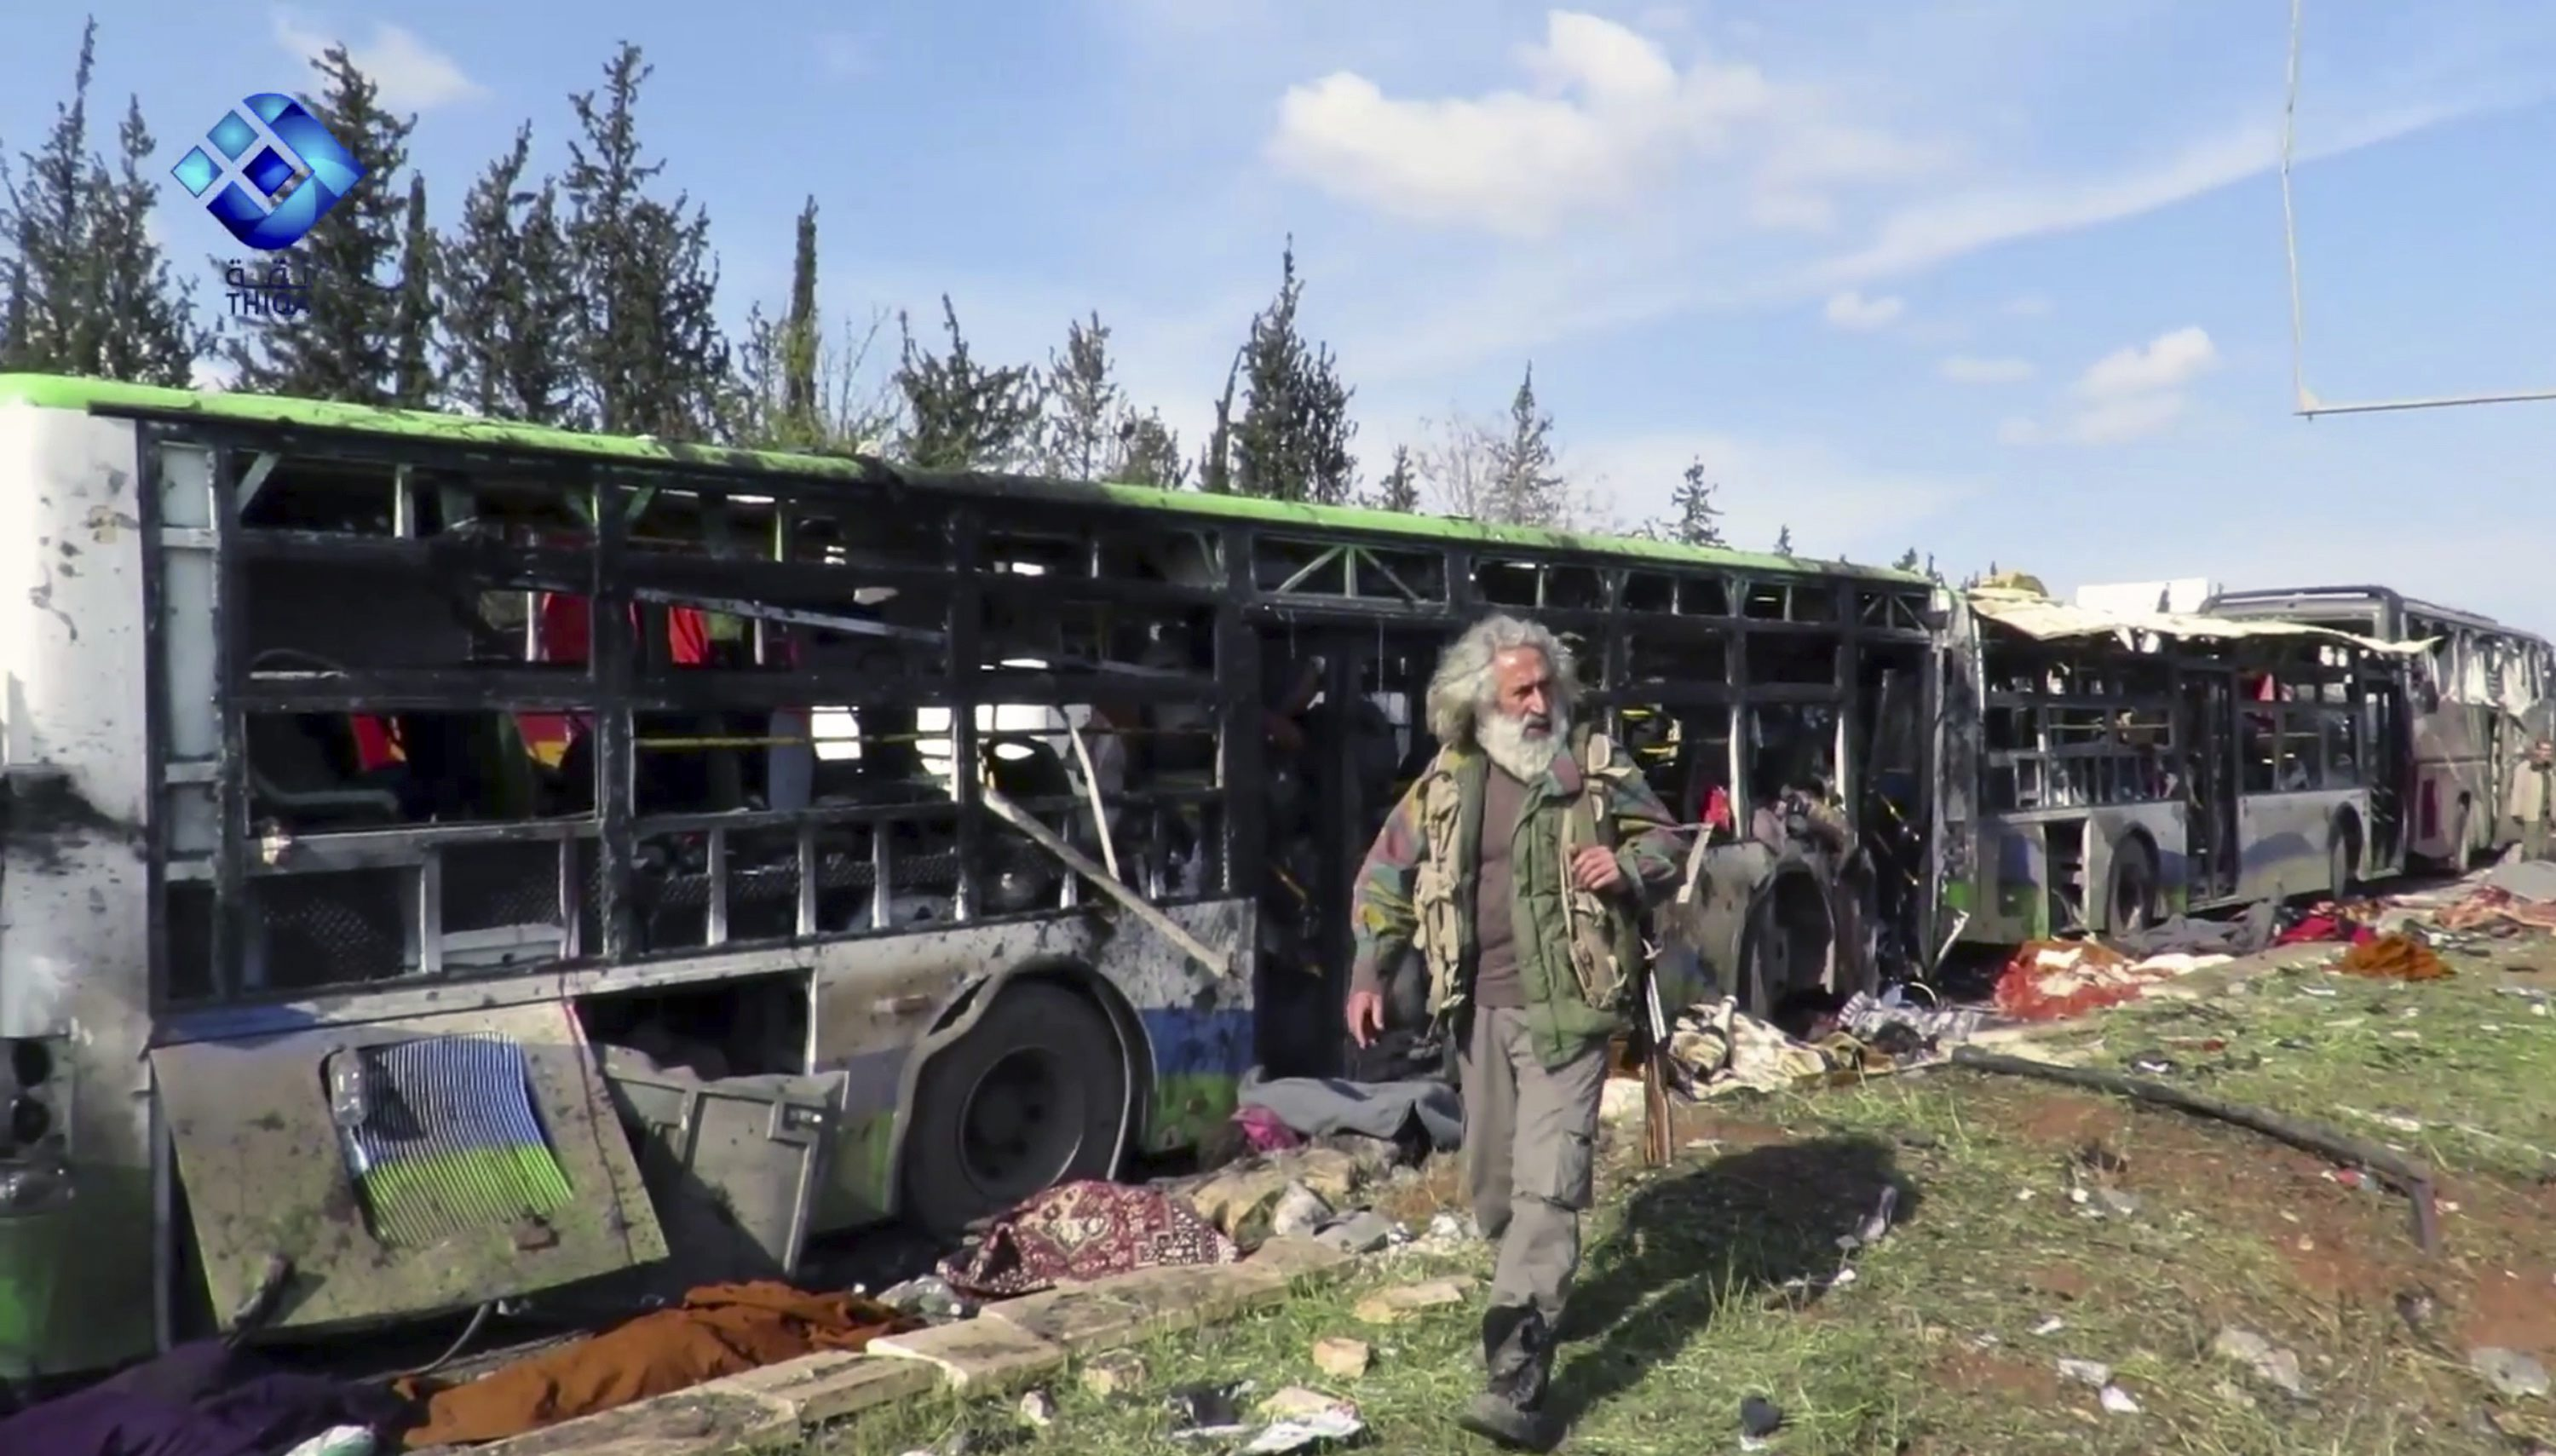 Over 100 killed, including children, during Syria's troubled